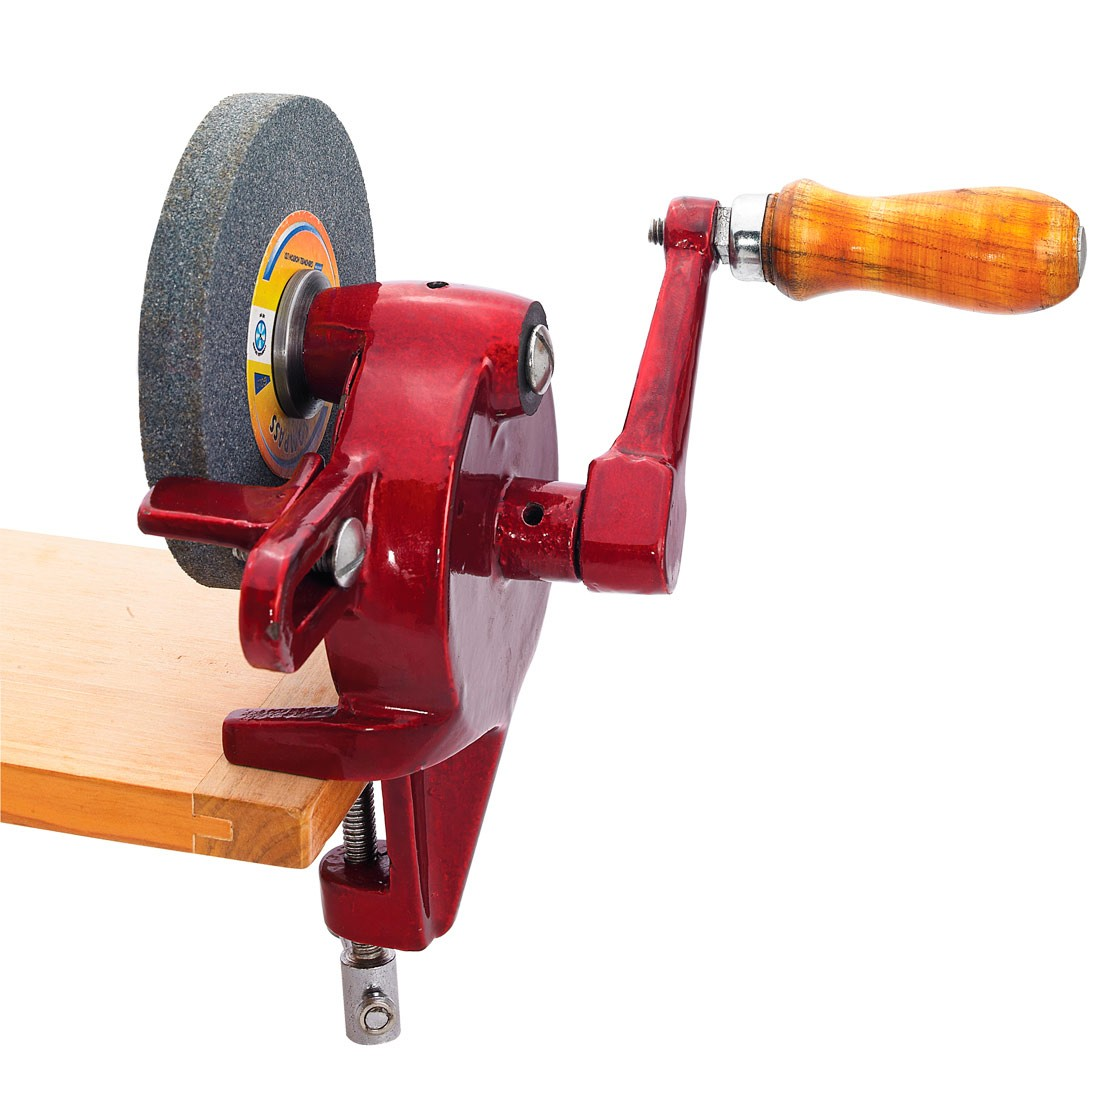 Pleasing Bn 340 Hand Operated Bench Grinder With 4 Stone Caraccident5 Cool Chair Designs And Ideas Caraccident5Info